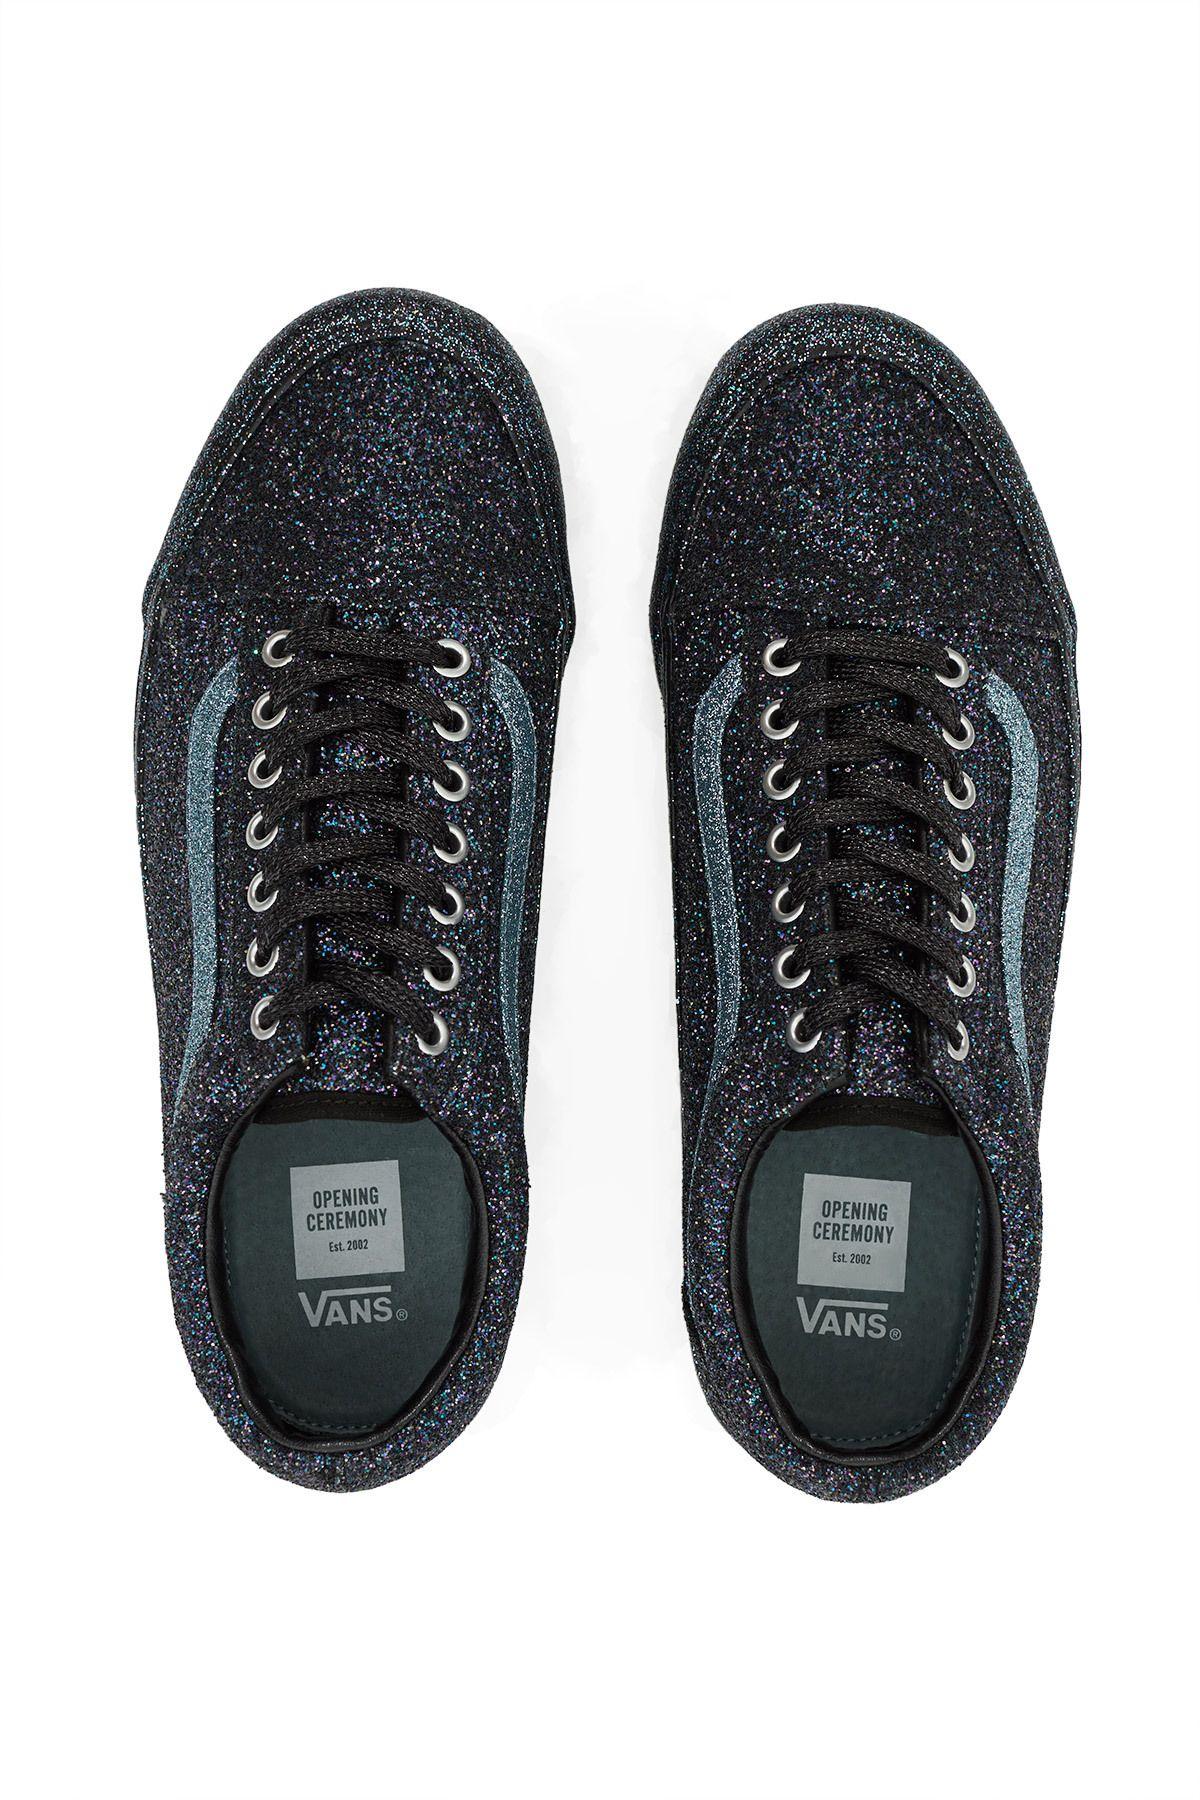 Vans for Opening Ceremony, Glitter OG Old Skool LX Sneaker